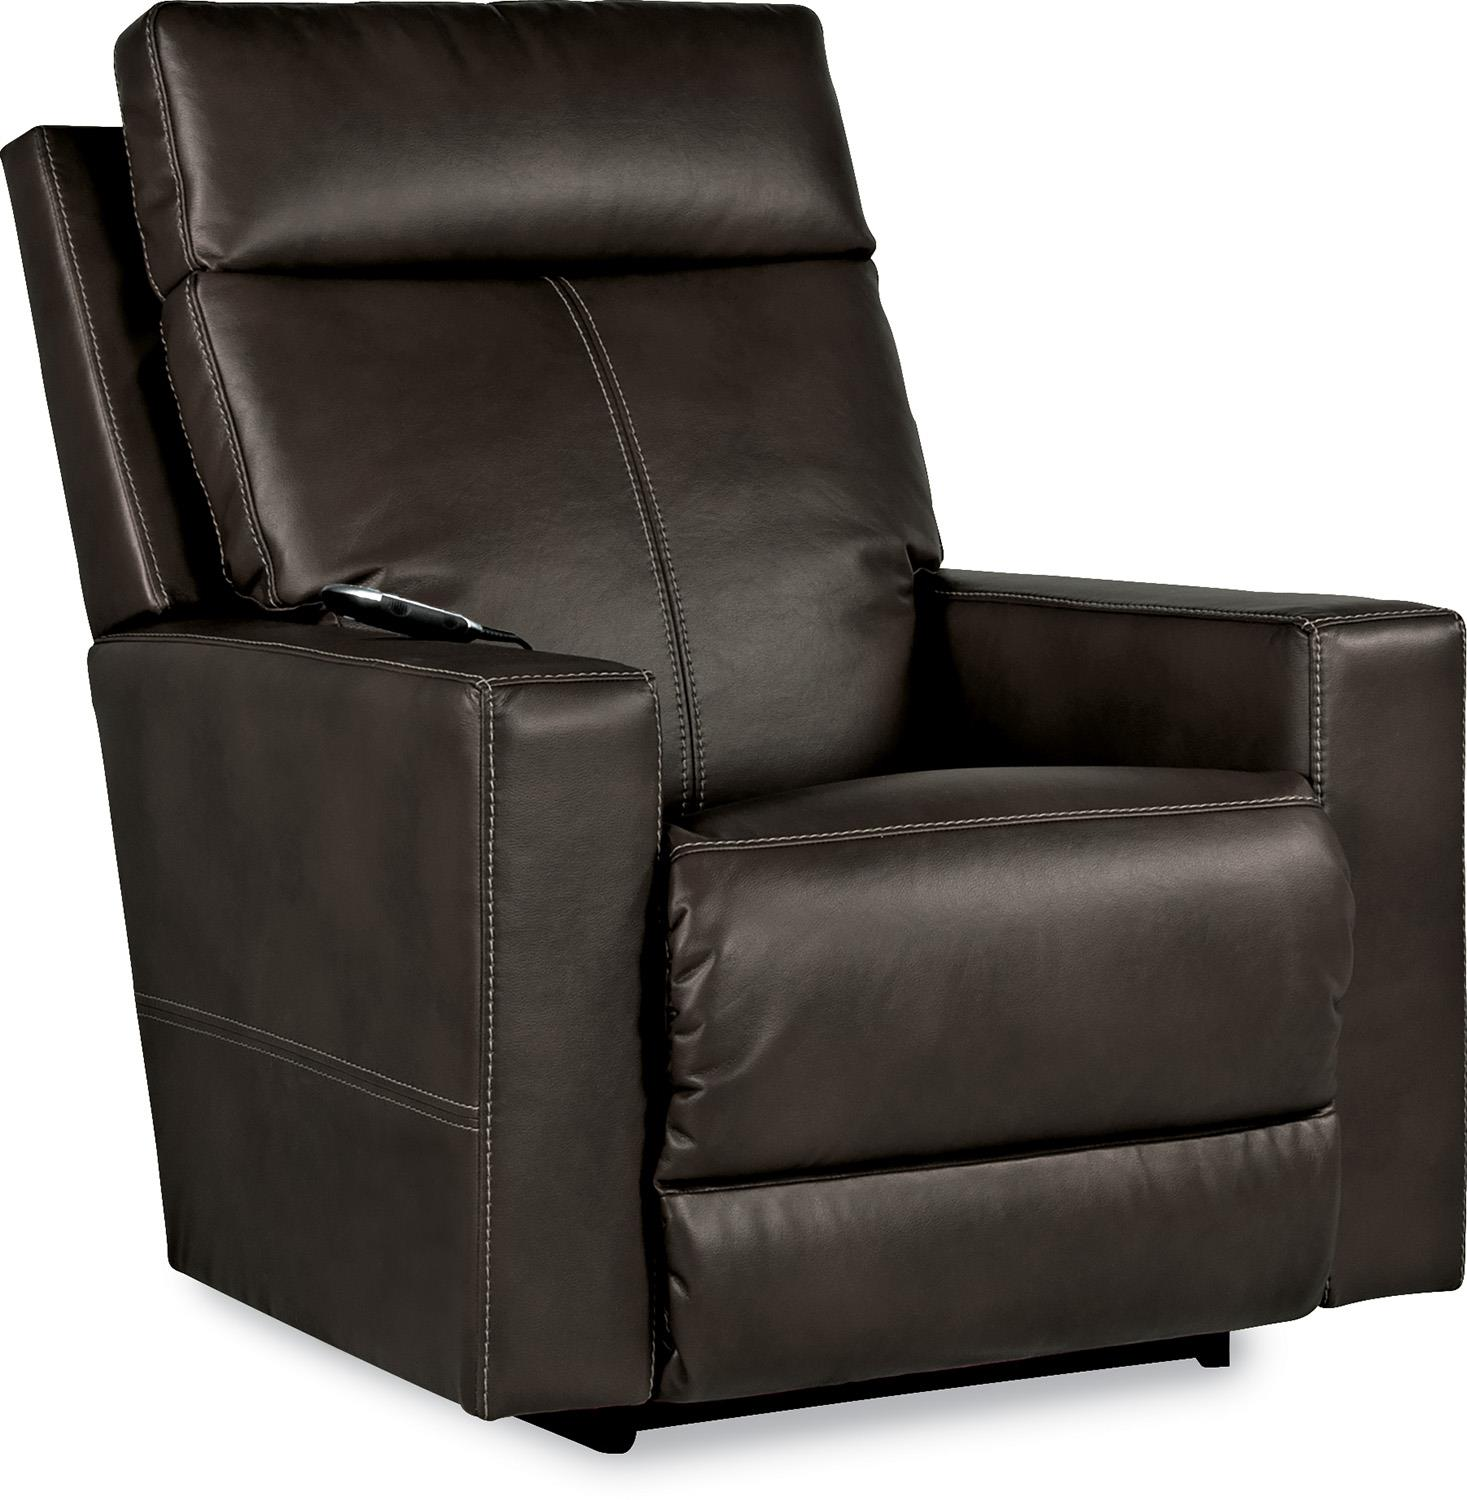 wayfair leather maverick furniture z reviews la recliner recliners pdx boy